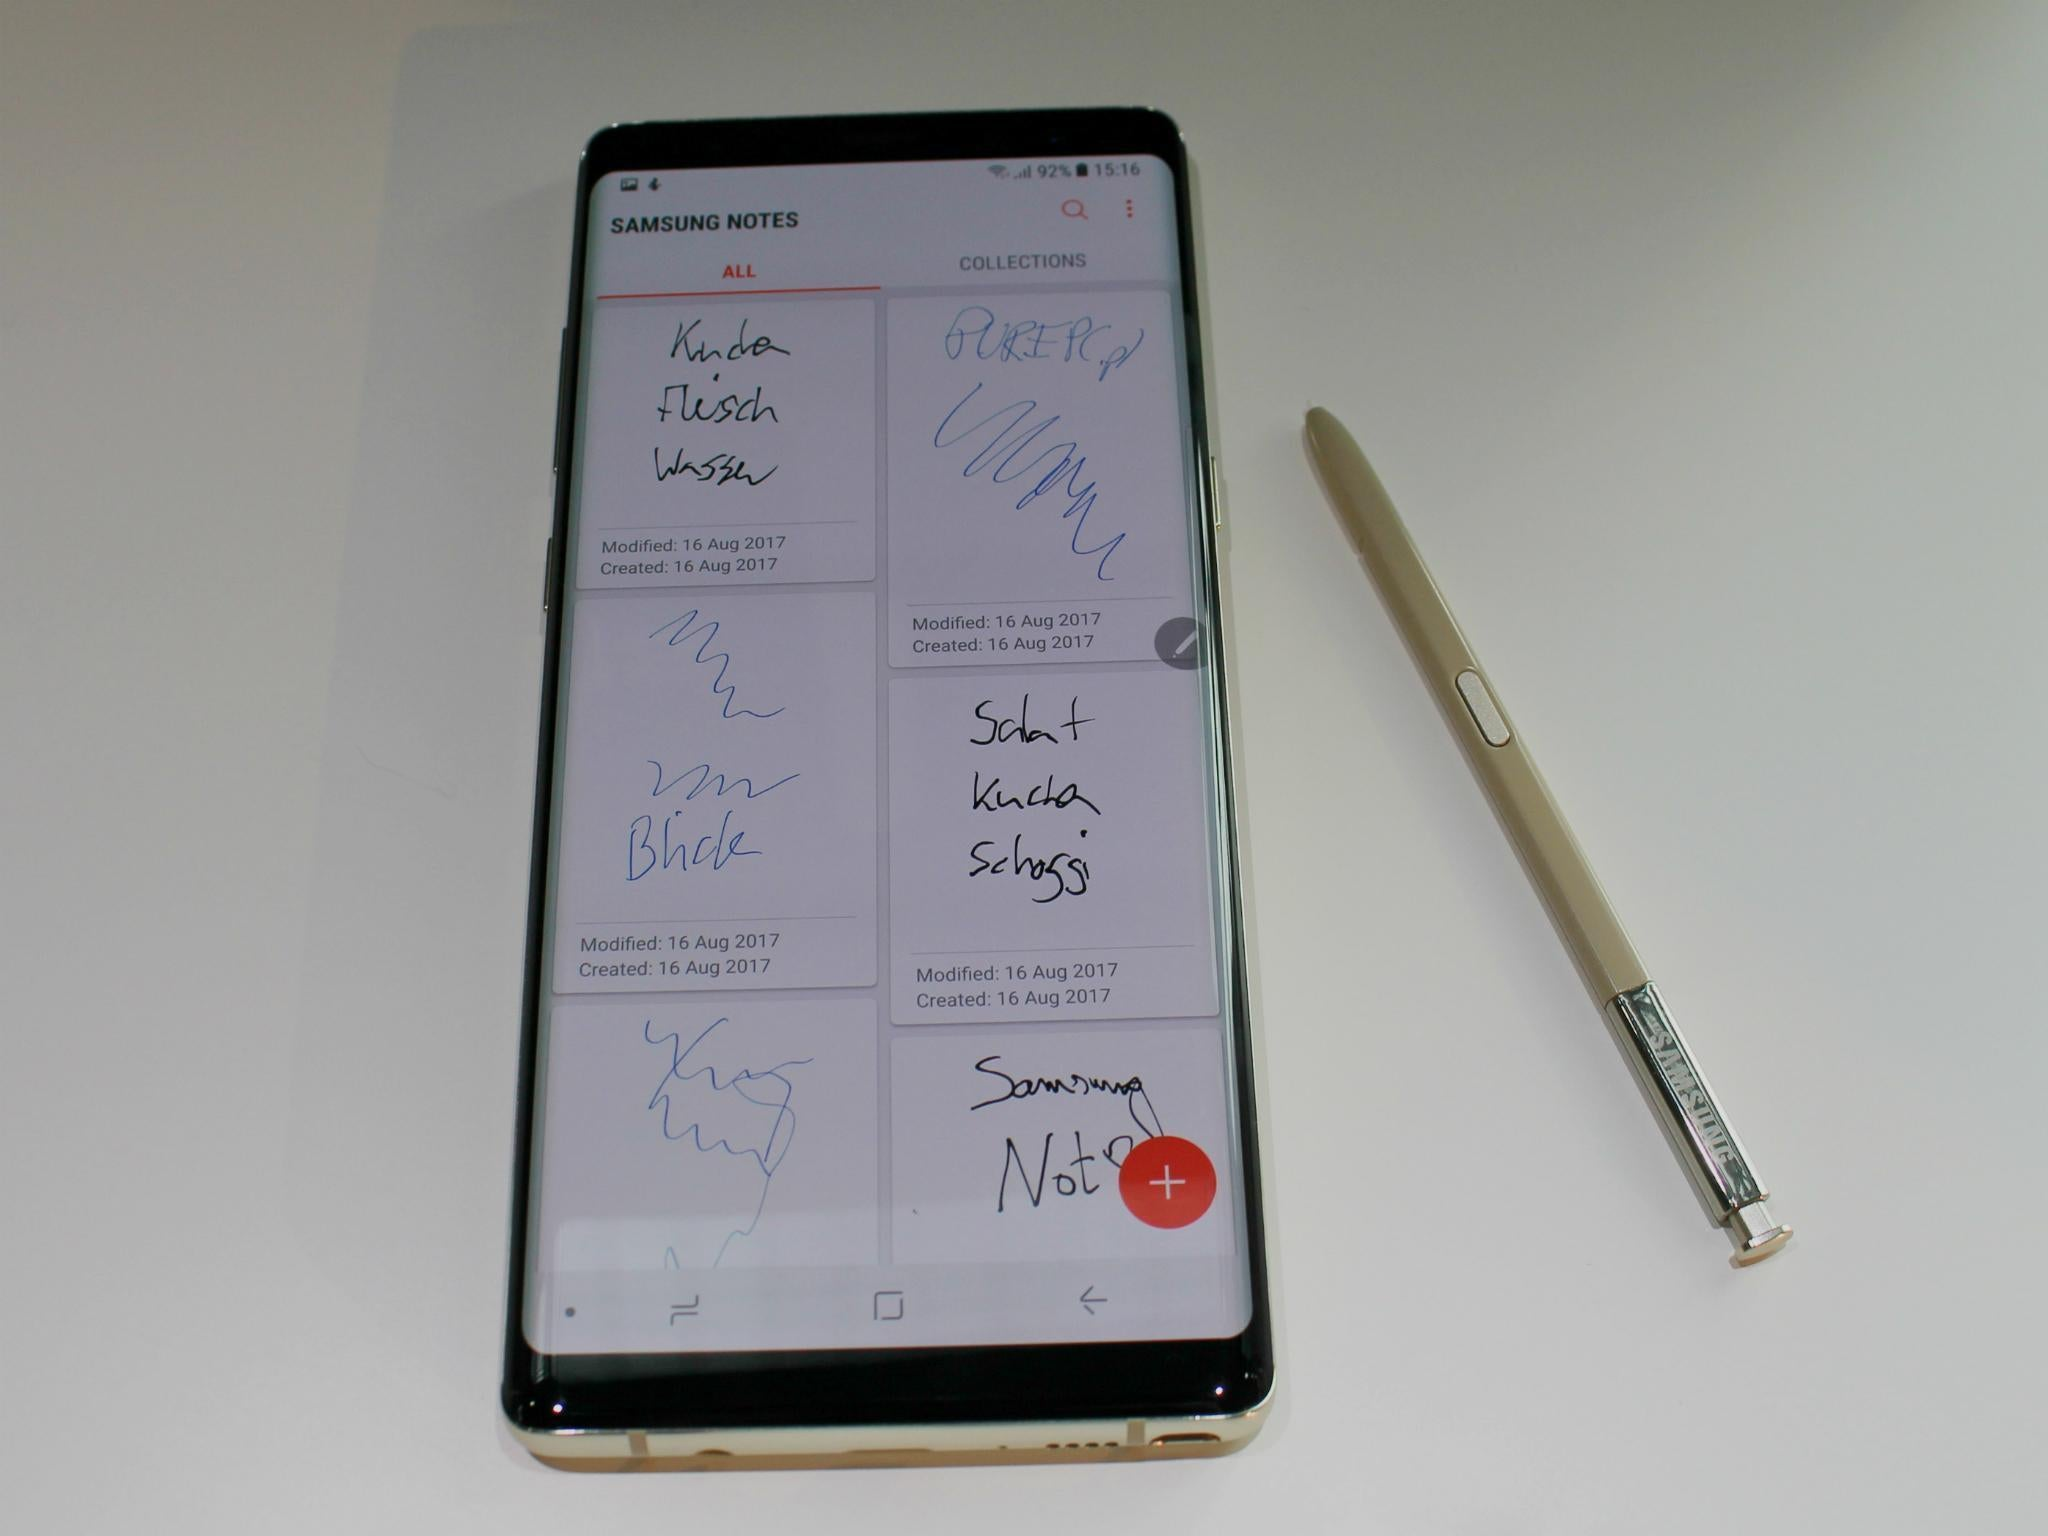 Samsung Galaxy Note 8: Why its new camera is so exciting | The